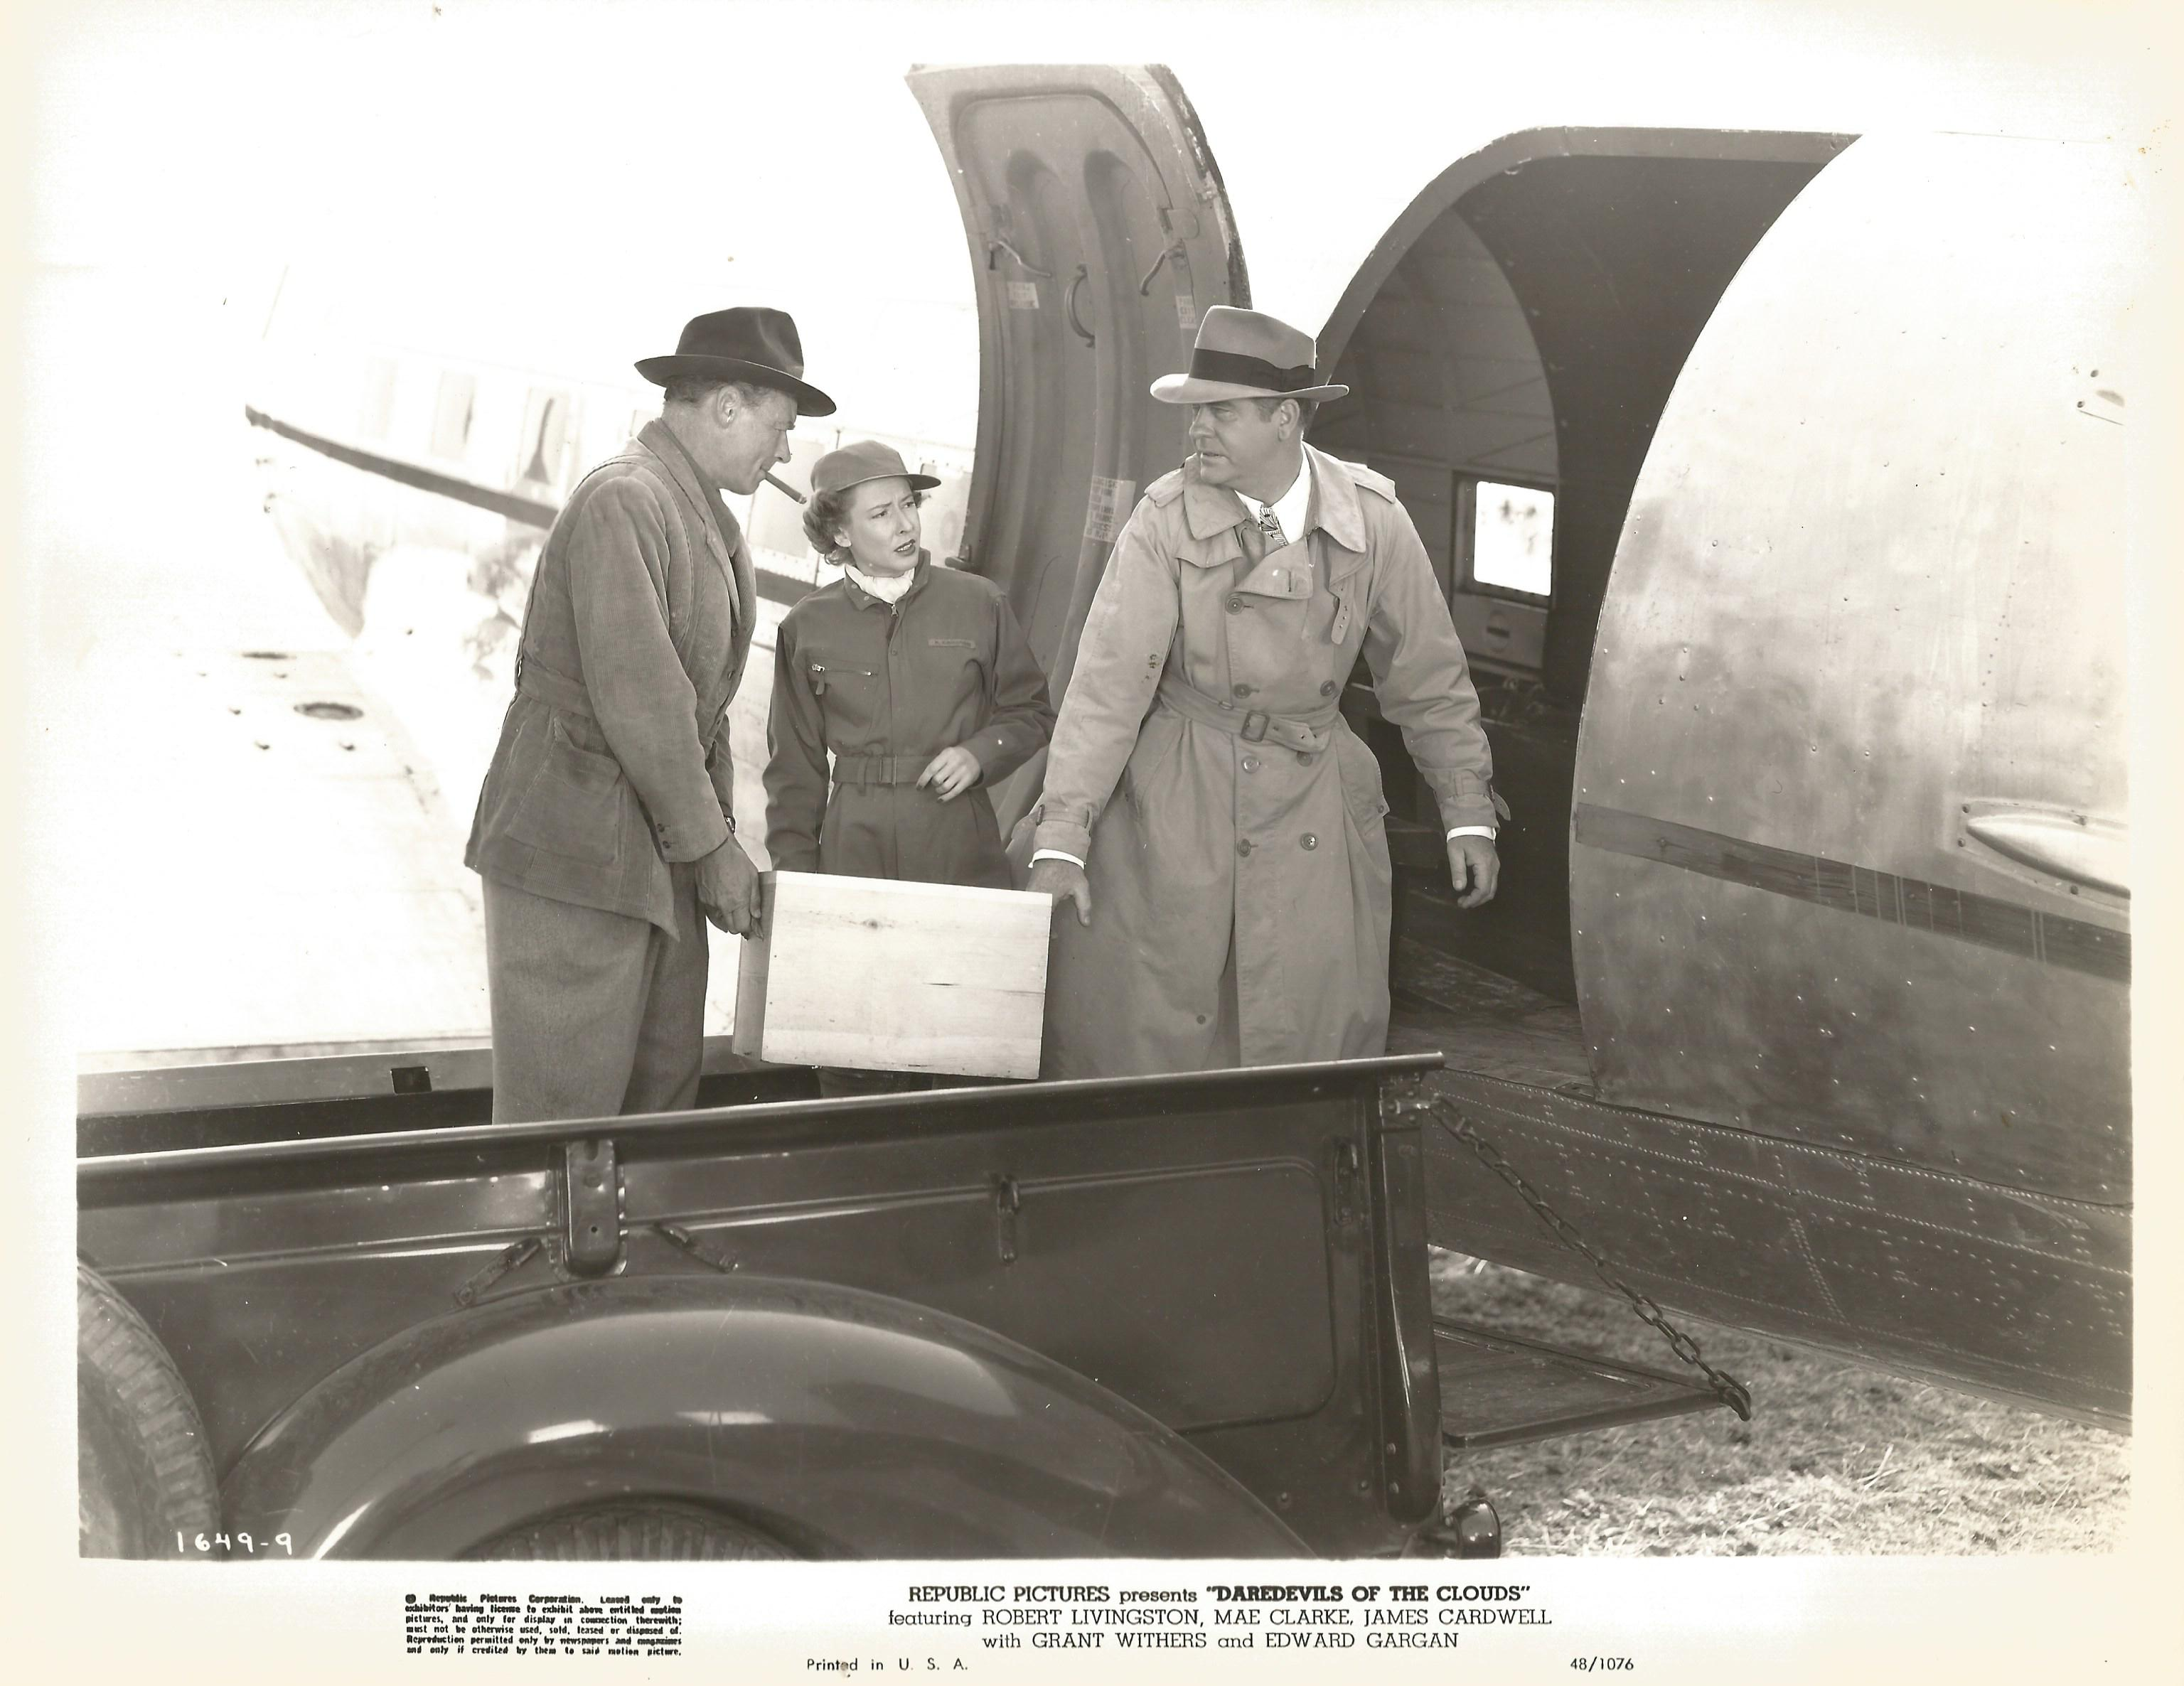 James Cardwell, Mae Clarke, and Edward Gargan in Daredevils of the Clouds (1948)